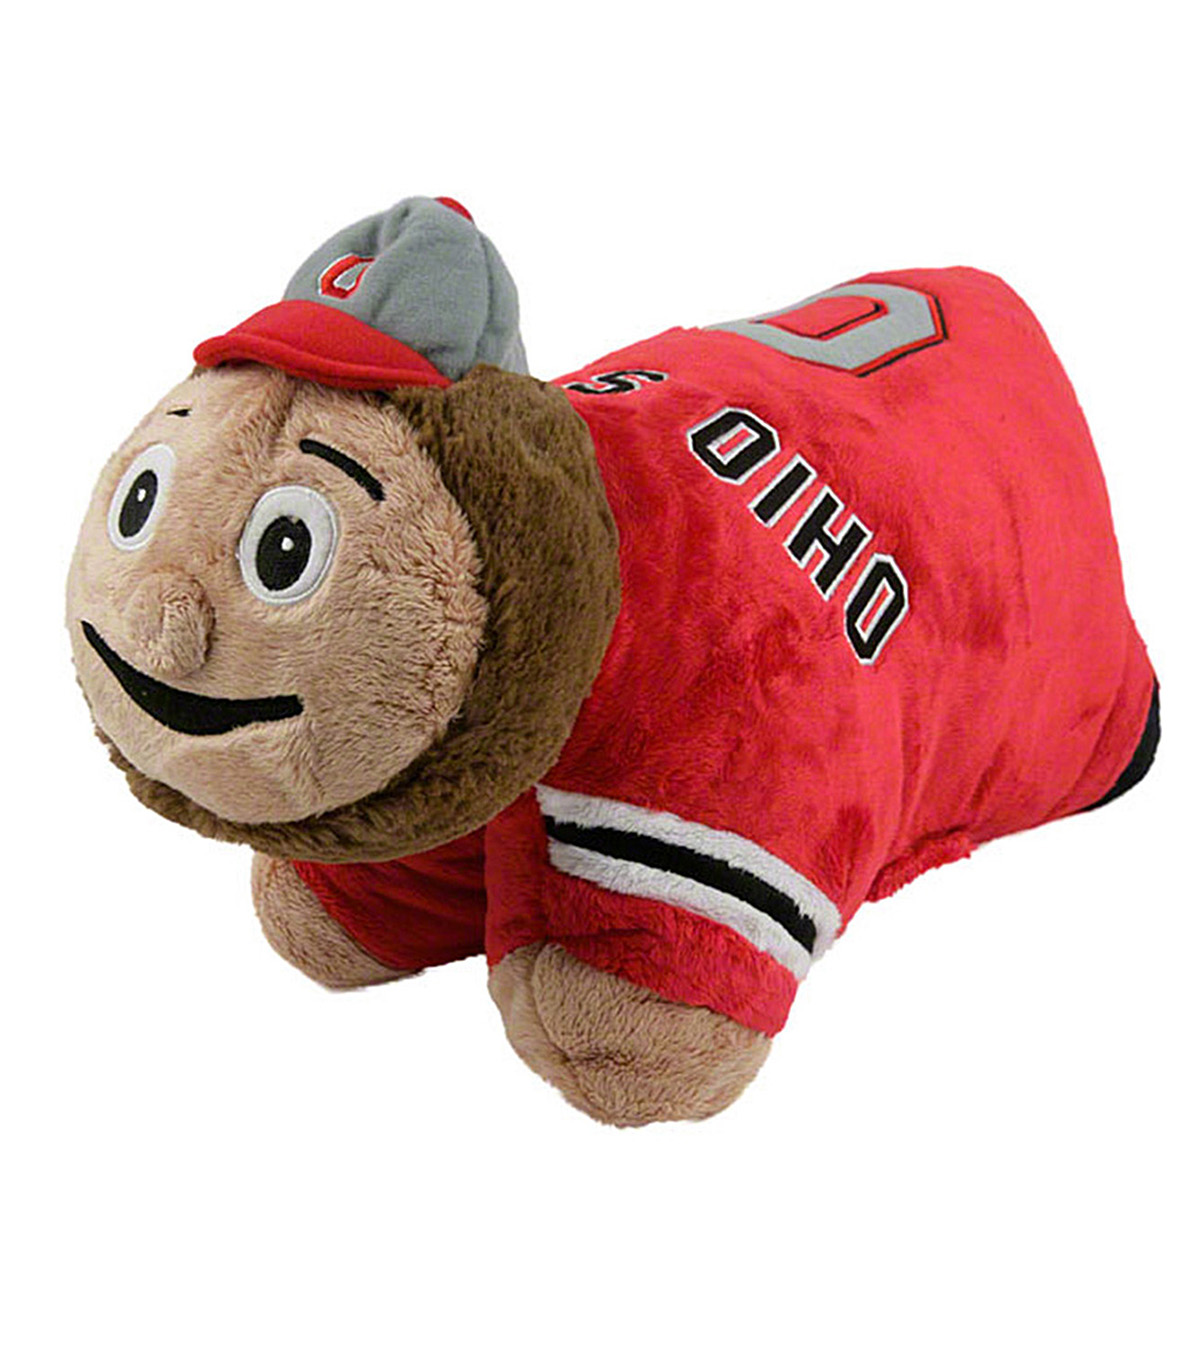 Ohio State University Buckeyes Pillow Pet